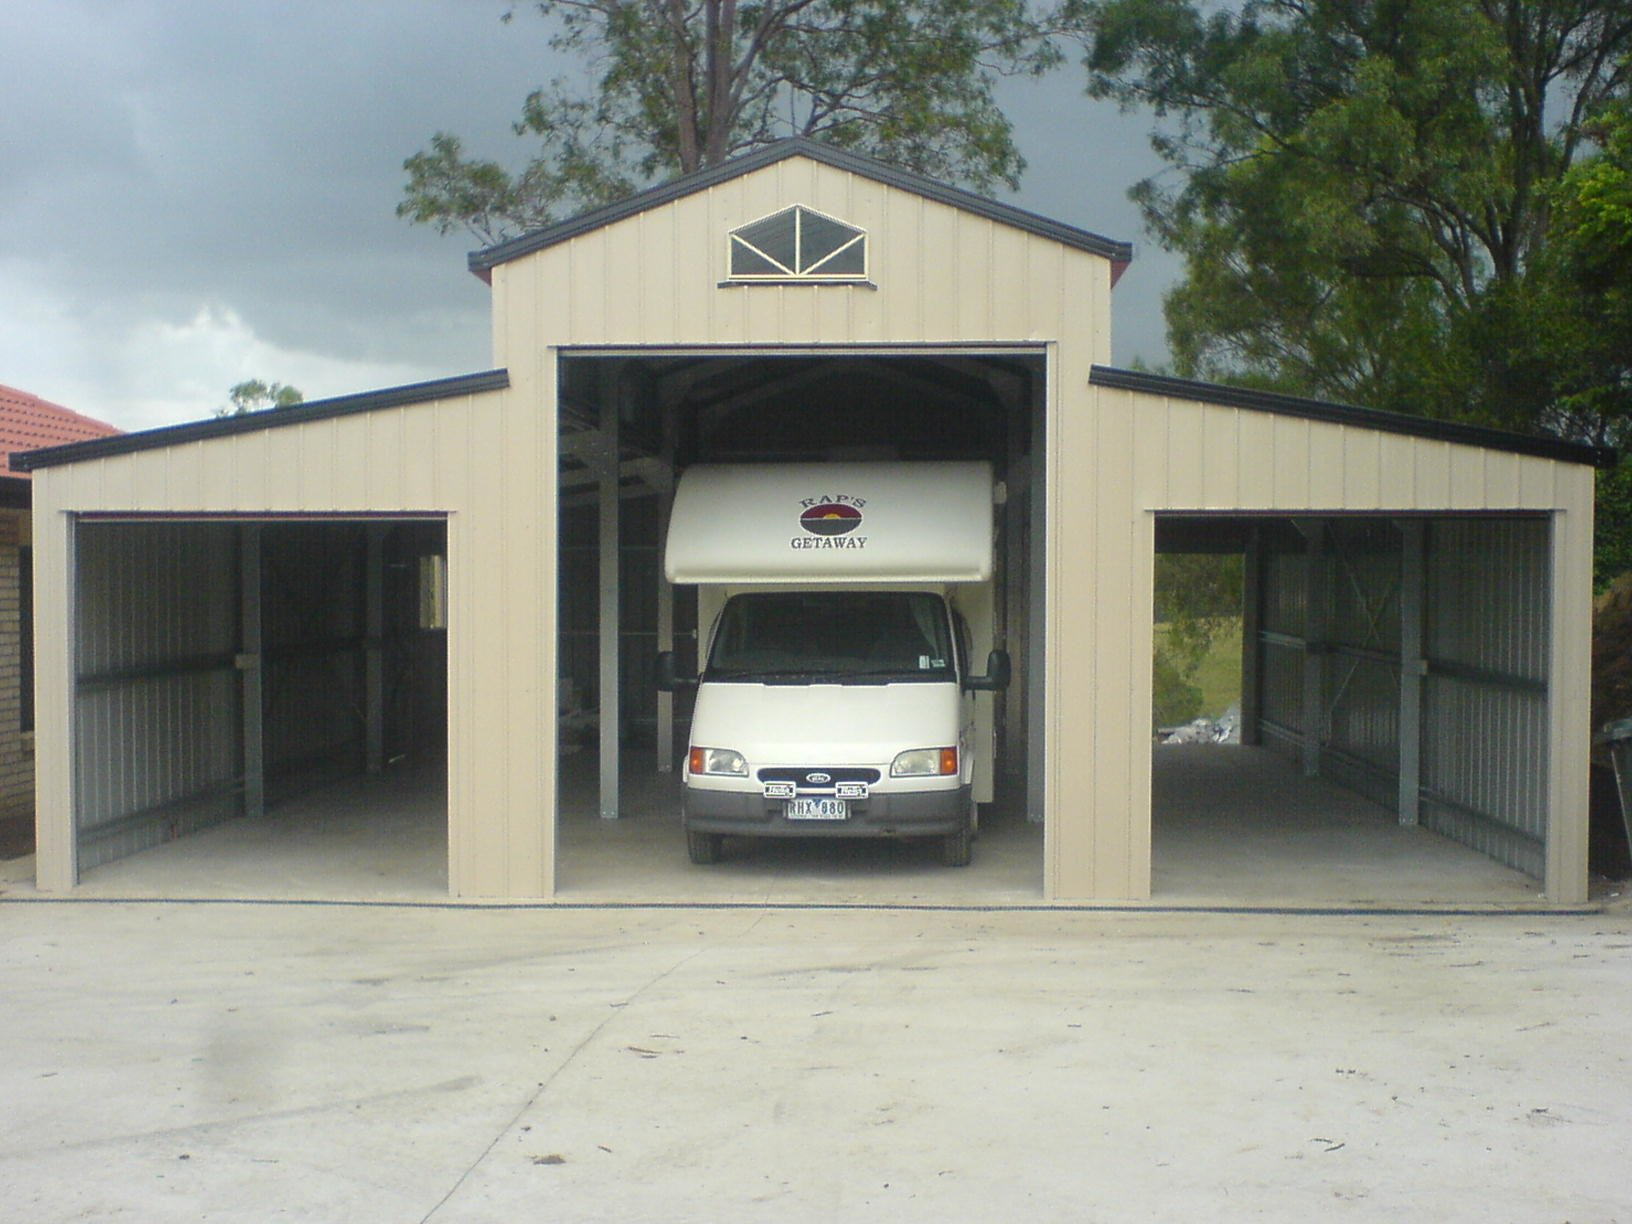 3 bay American style barn with no doors